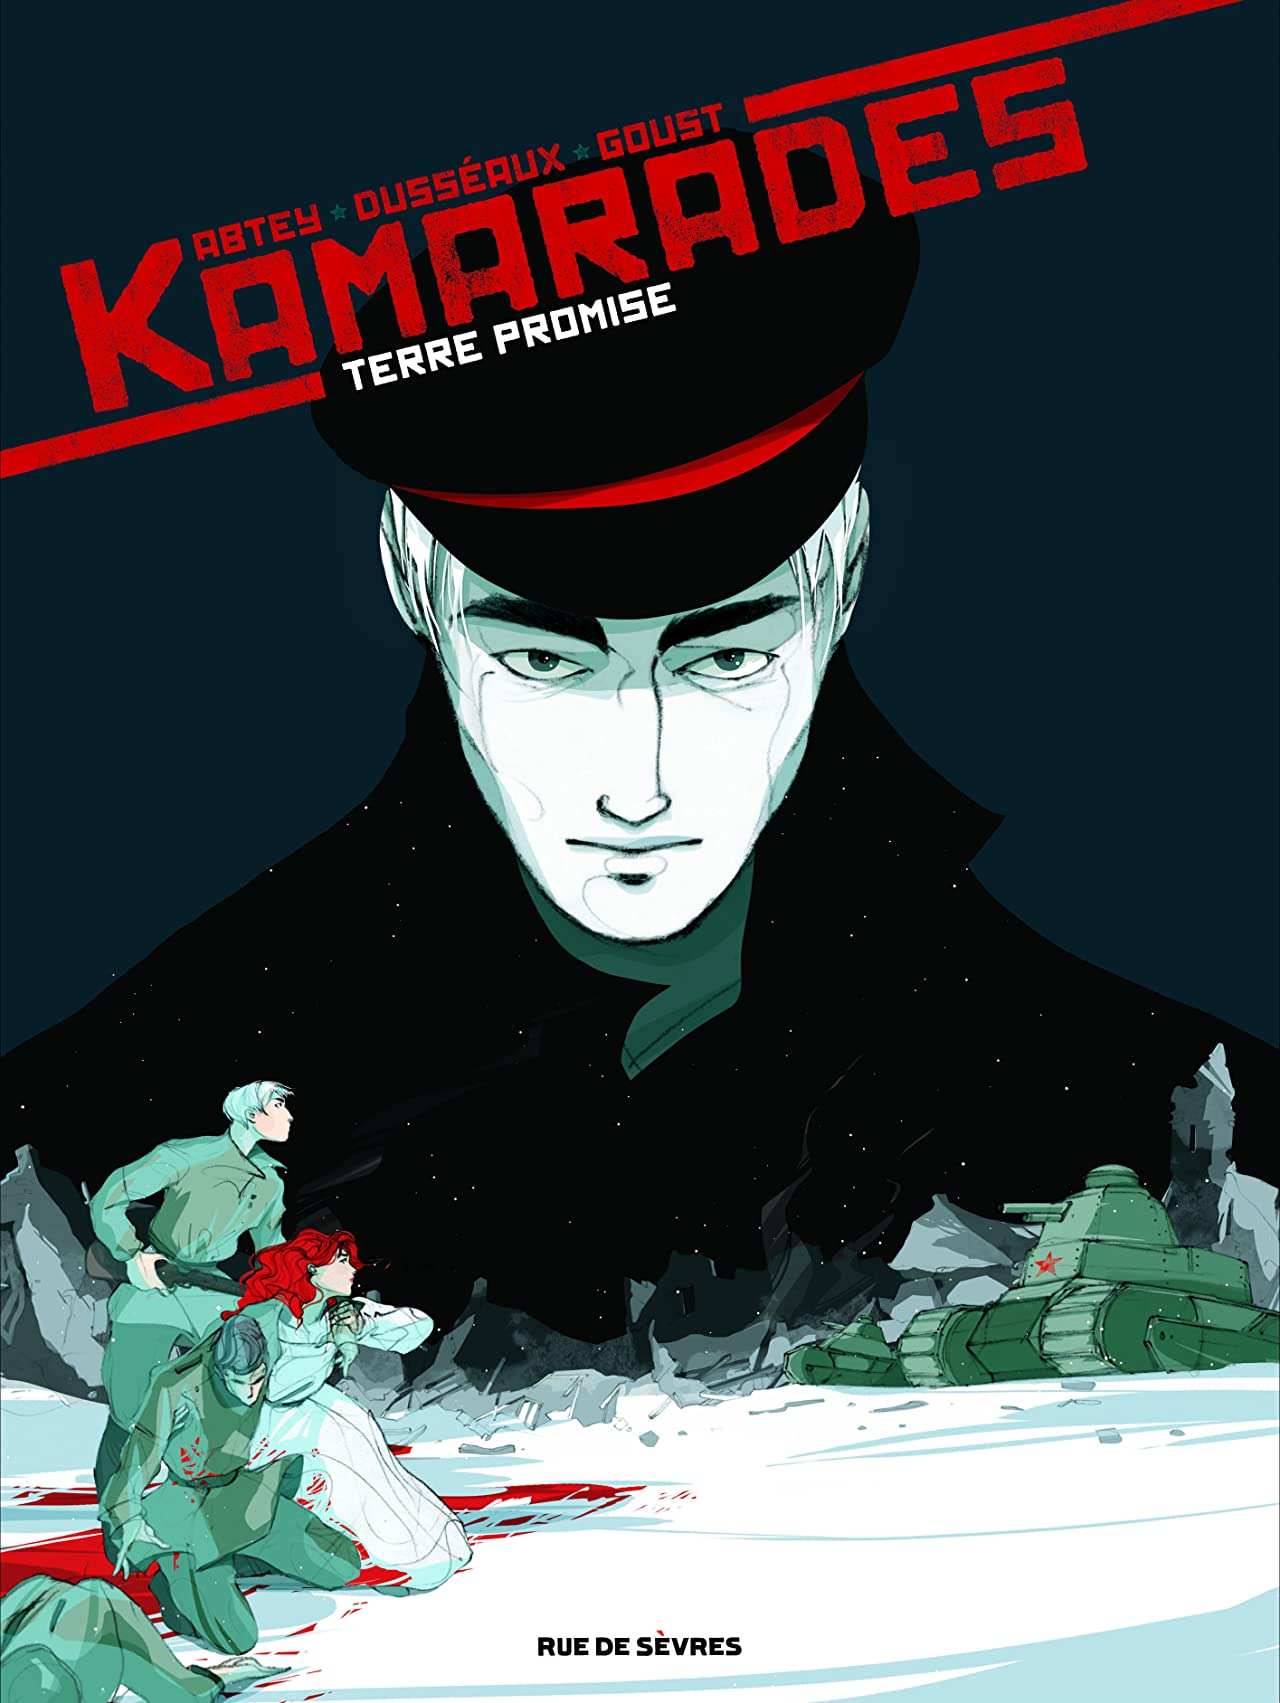 Kamarades Tome 3: Terre promise